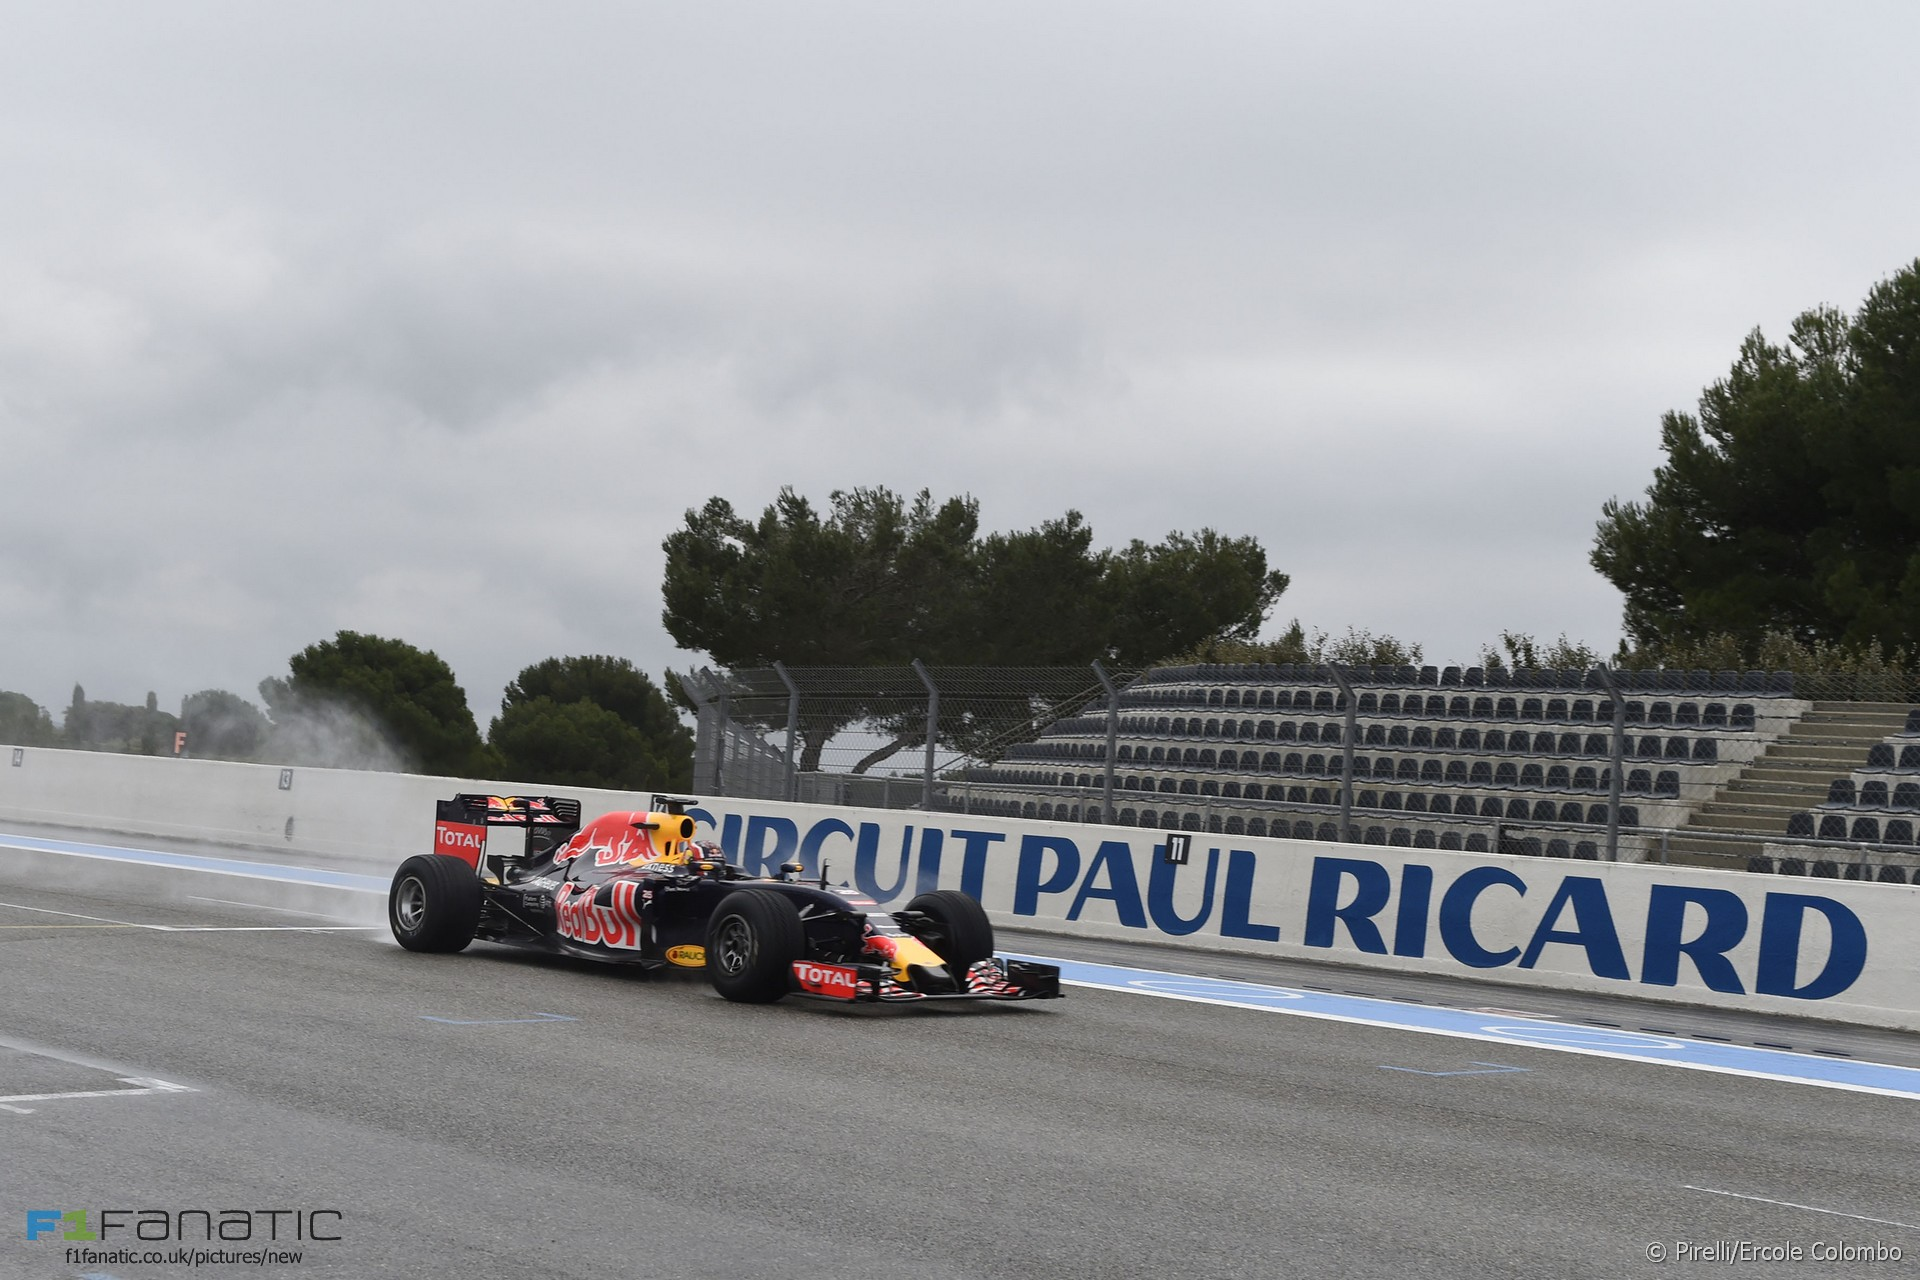 daniil kvyat red bull paul ricard 2016 f1 fanatic. Black Bedroom Furniture Sets. Home Design Ideas